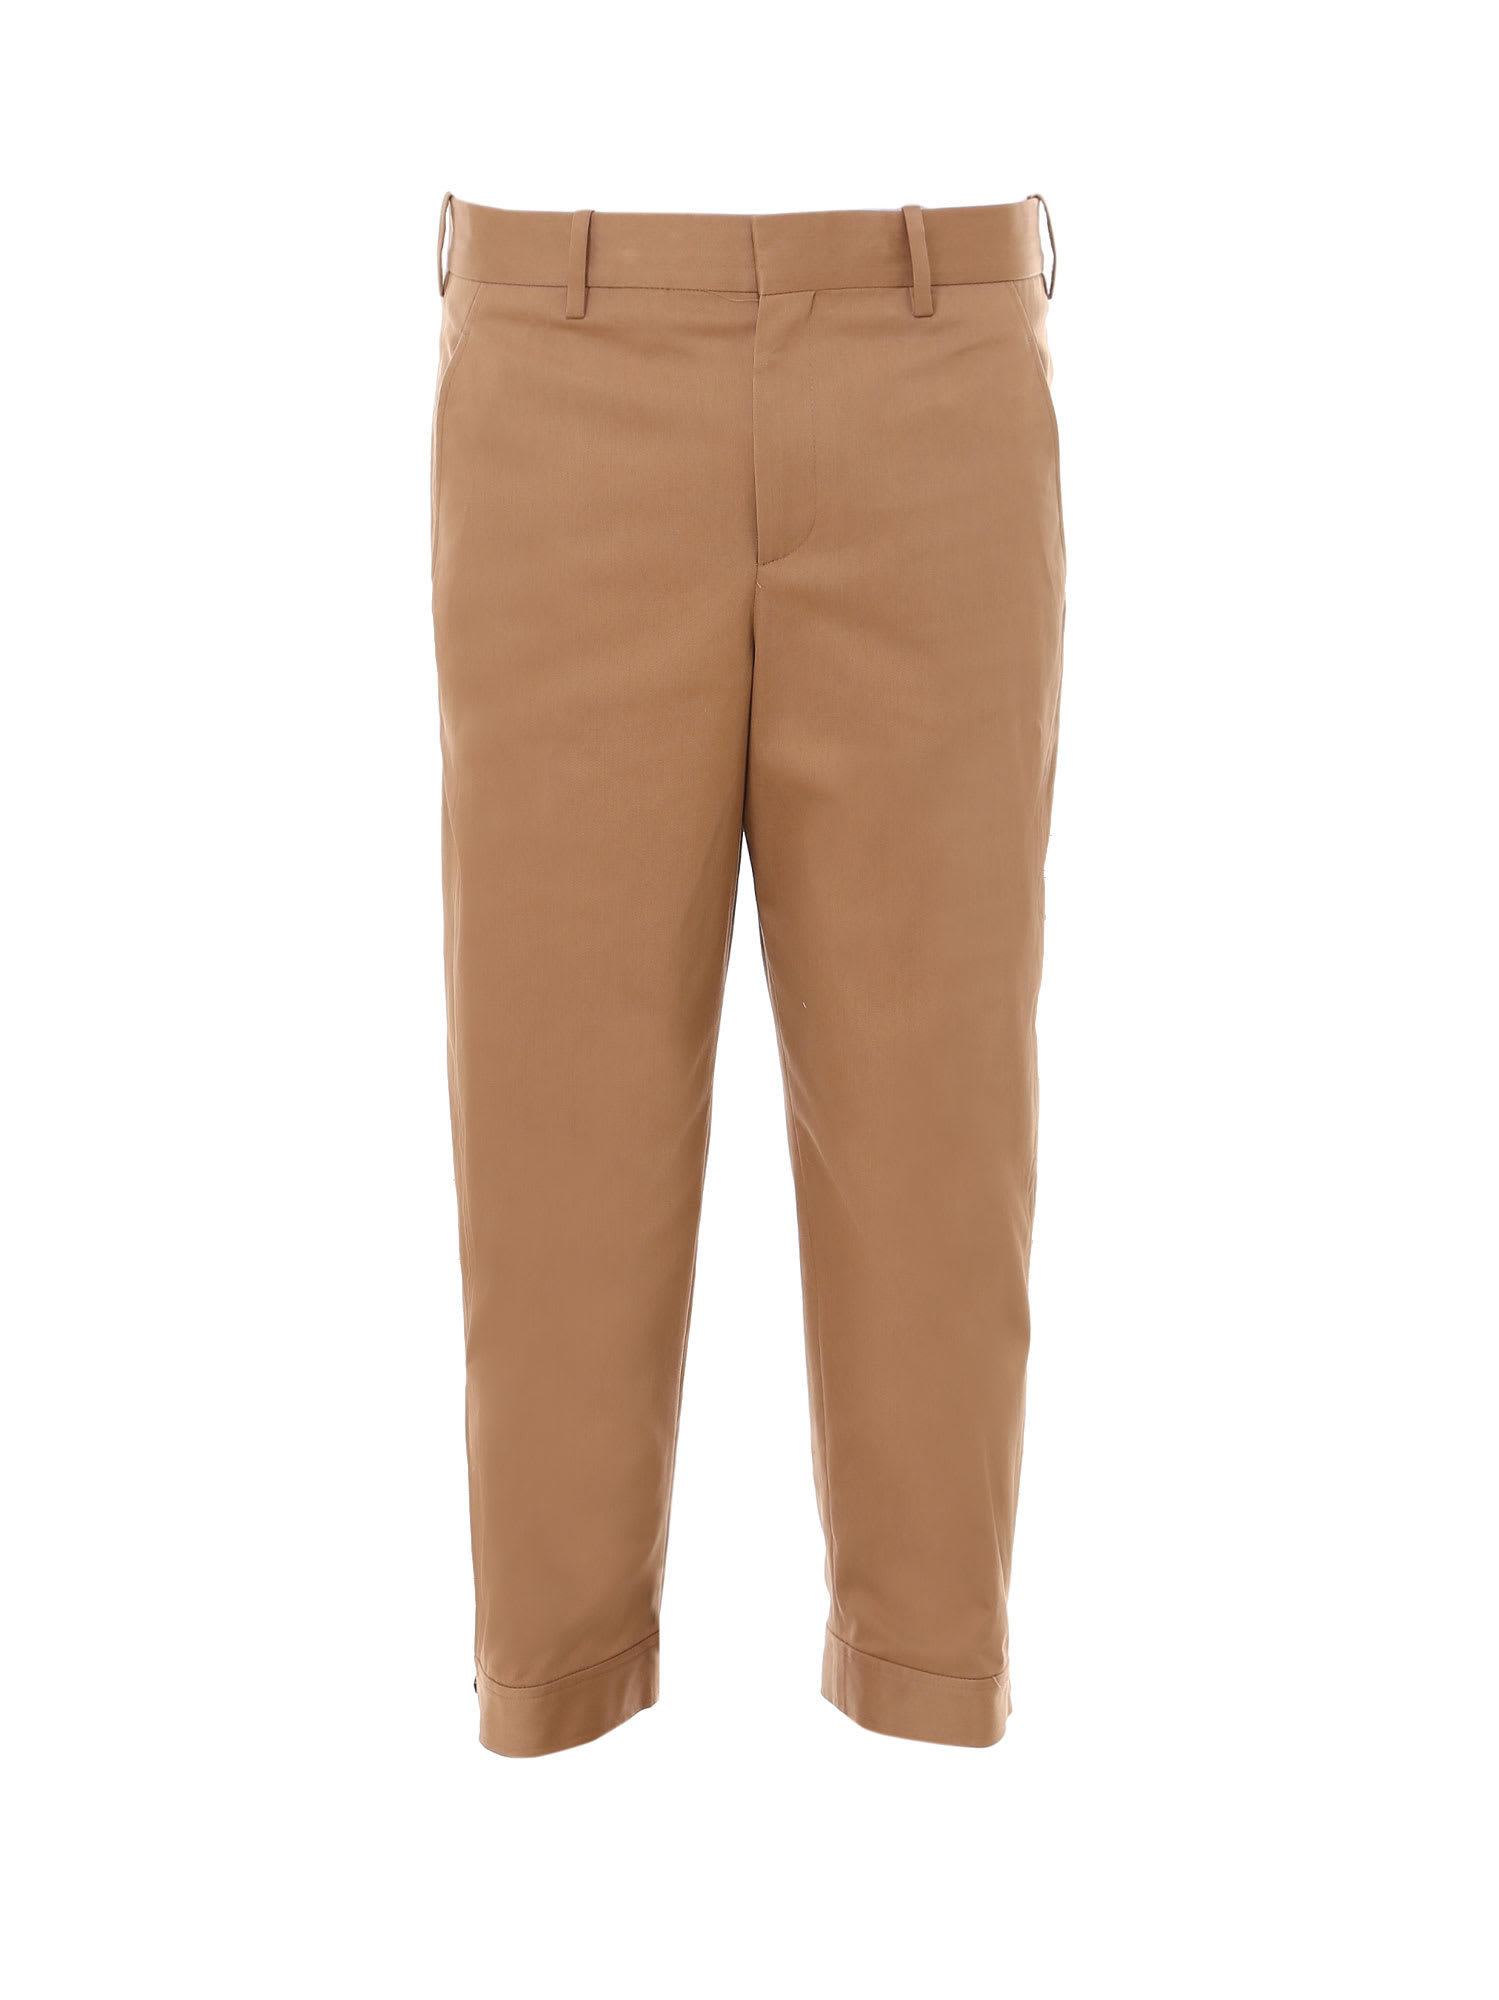 NEIL BARRETT TROUSERS